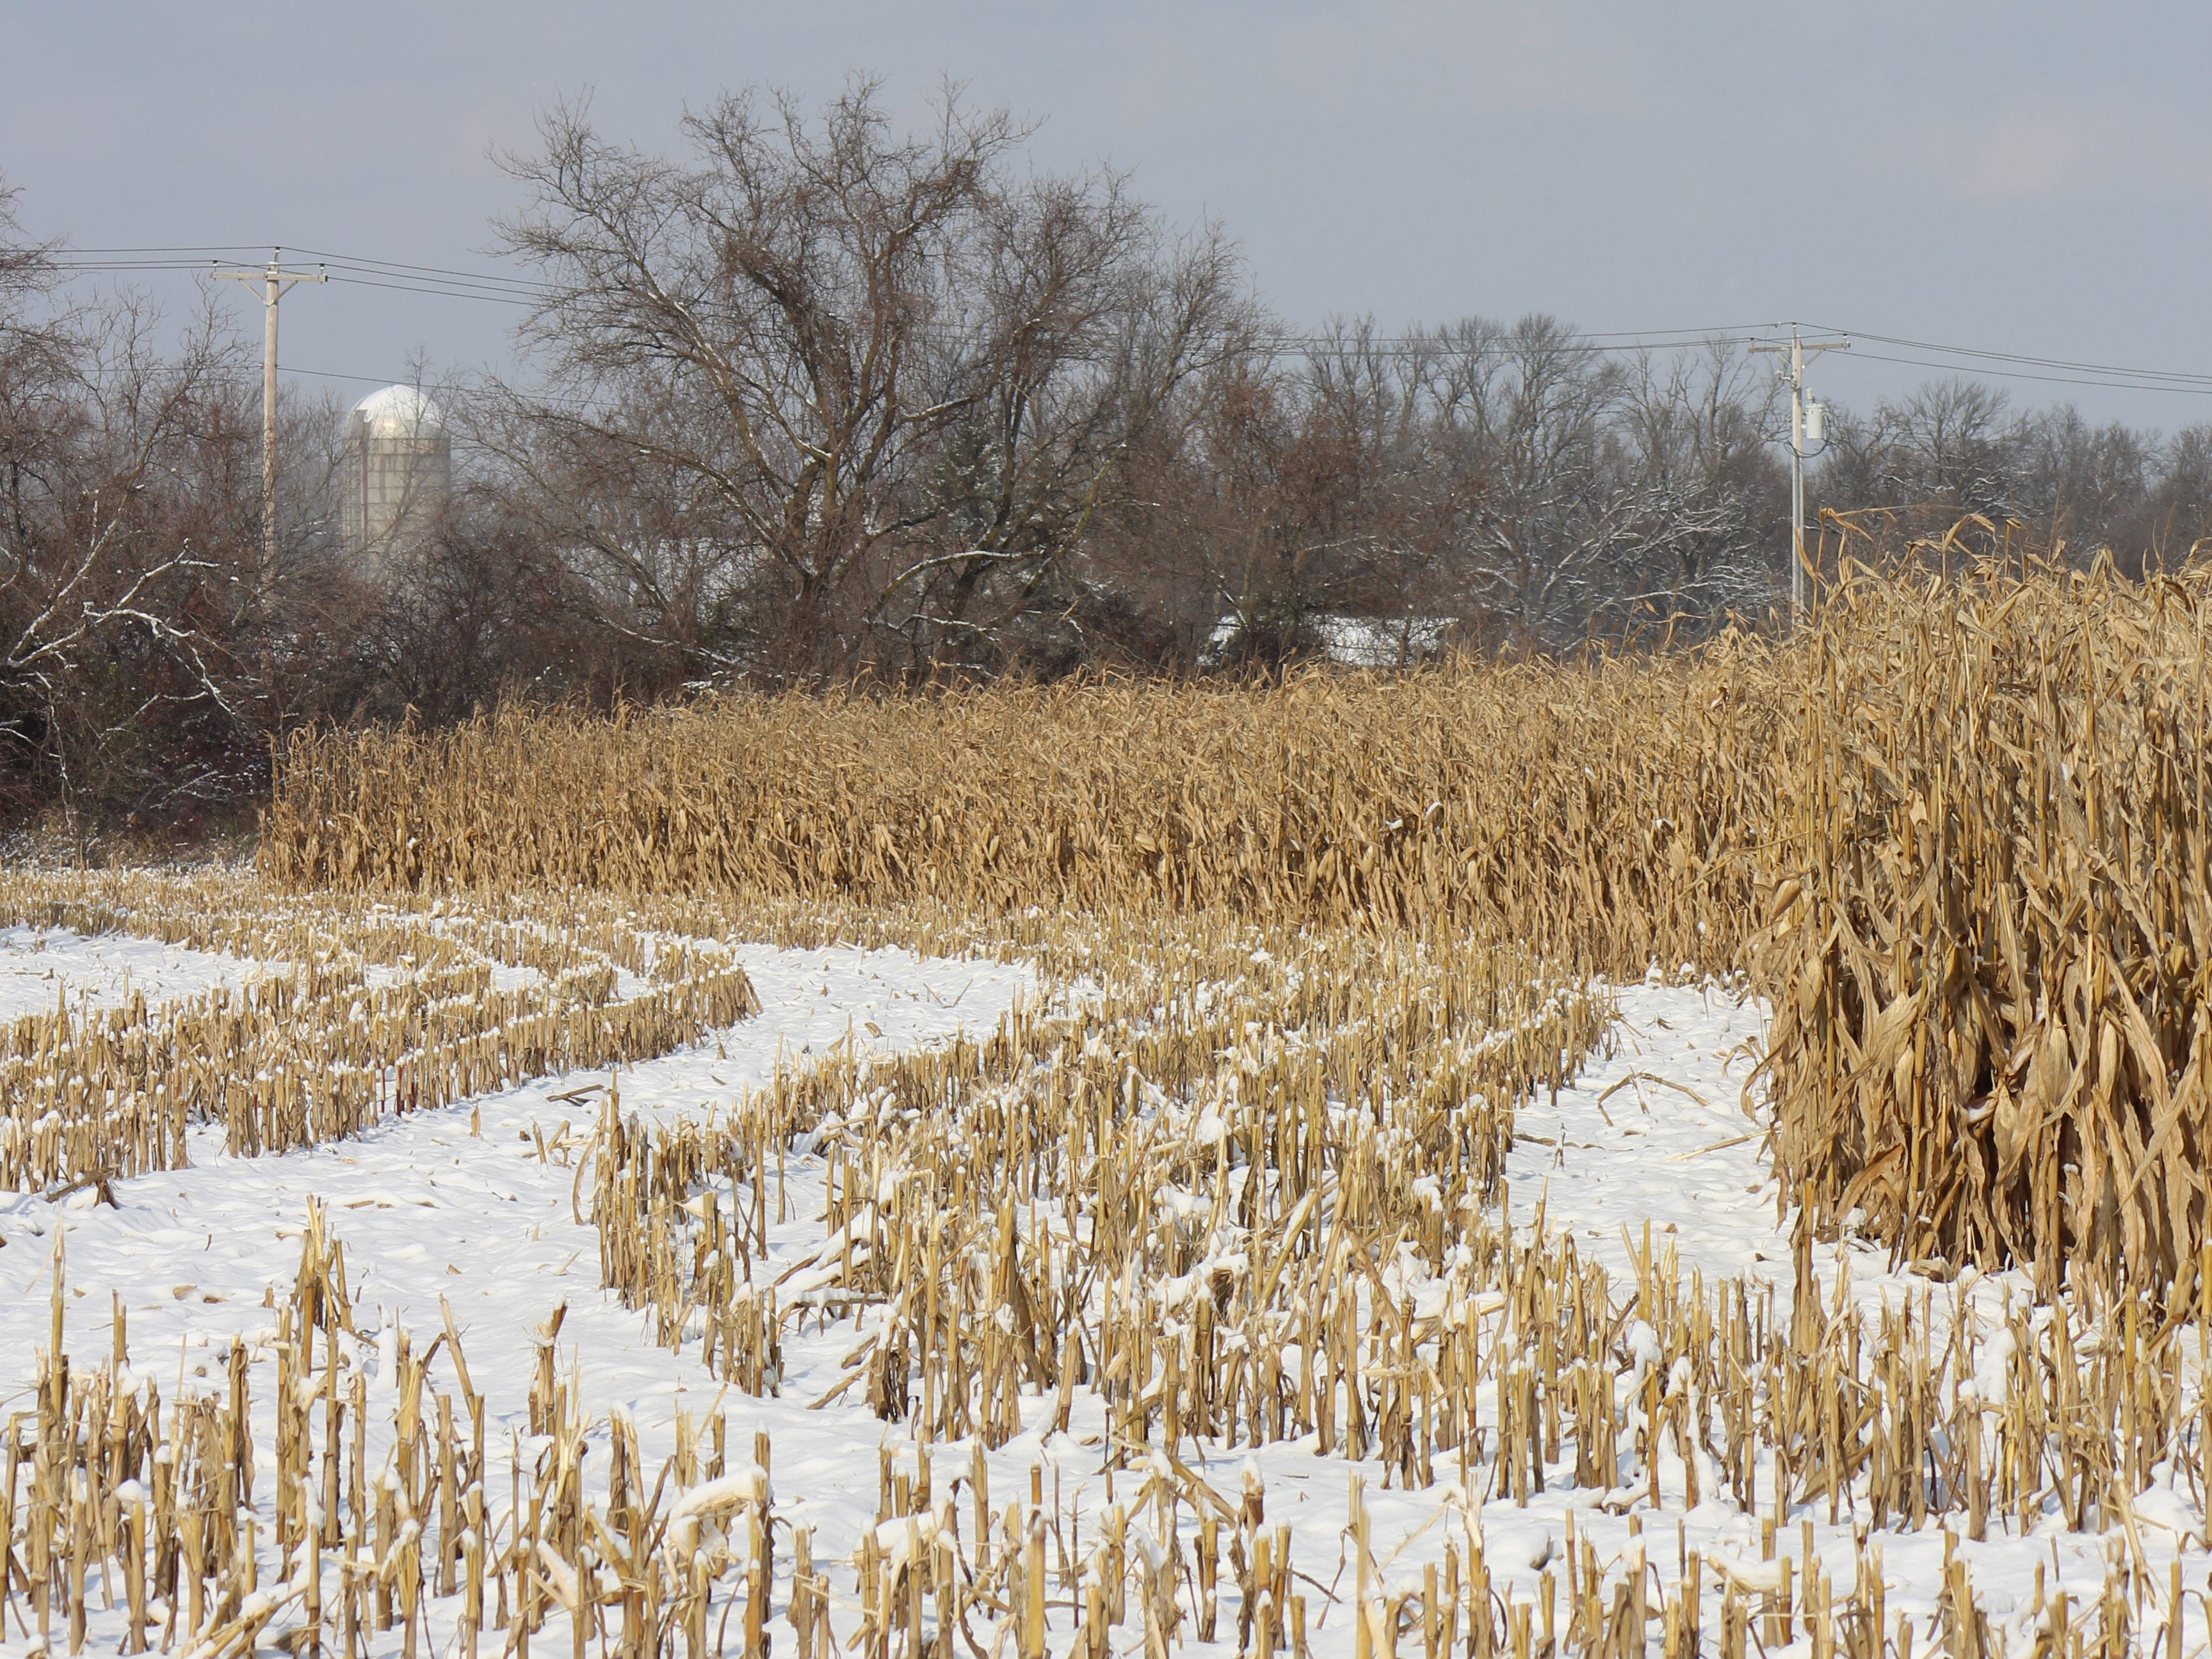 Corn stands waiting to be harvested in this farm field south of Fond du Lac.